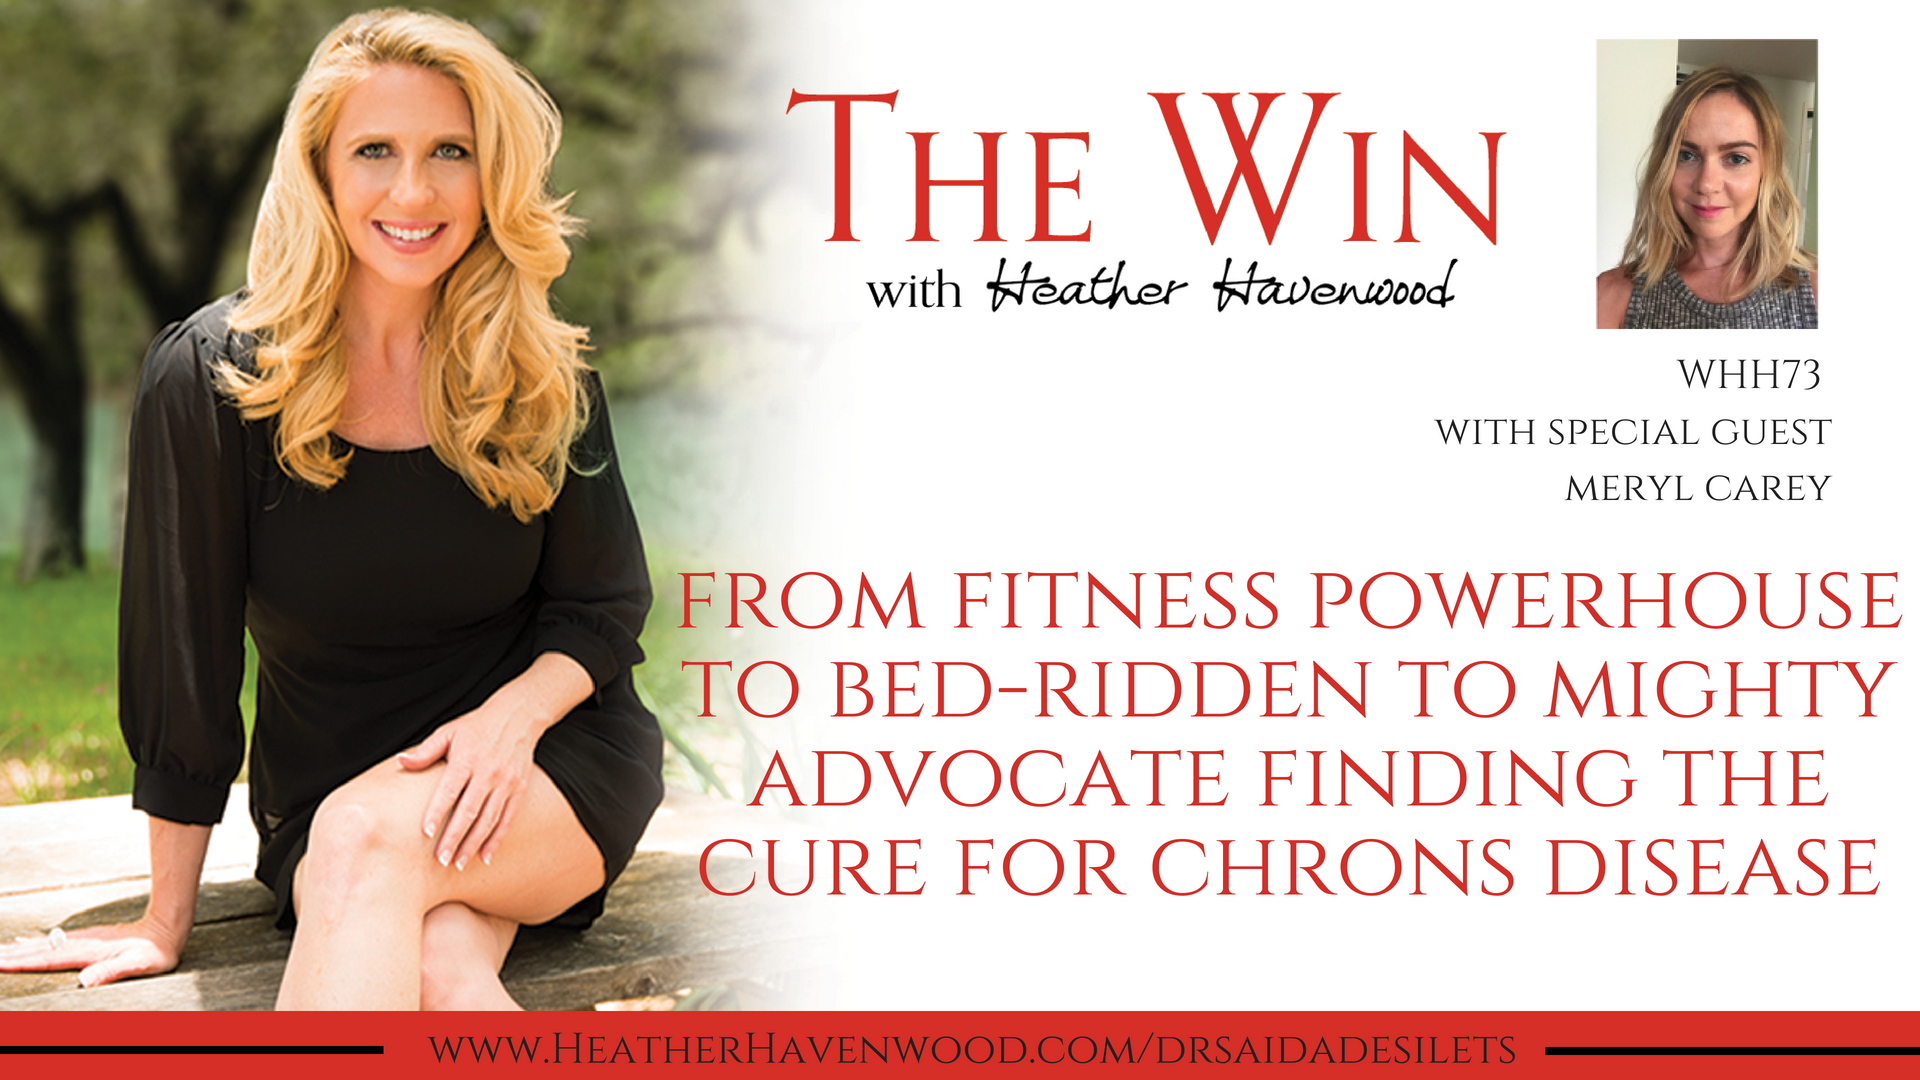 From Fitness Powerhouse to Bed ridden to Mighty Advocate to Find the Cure of Crohns Disease